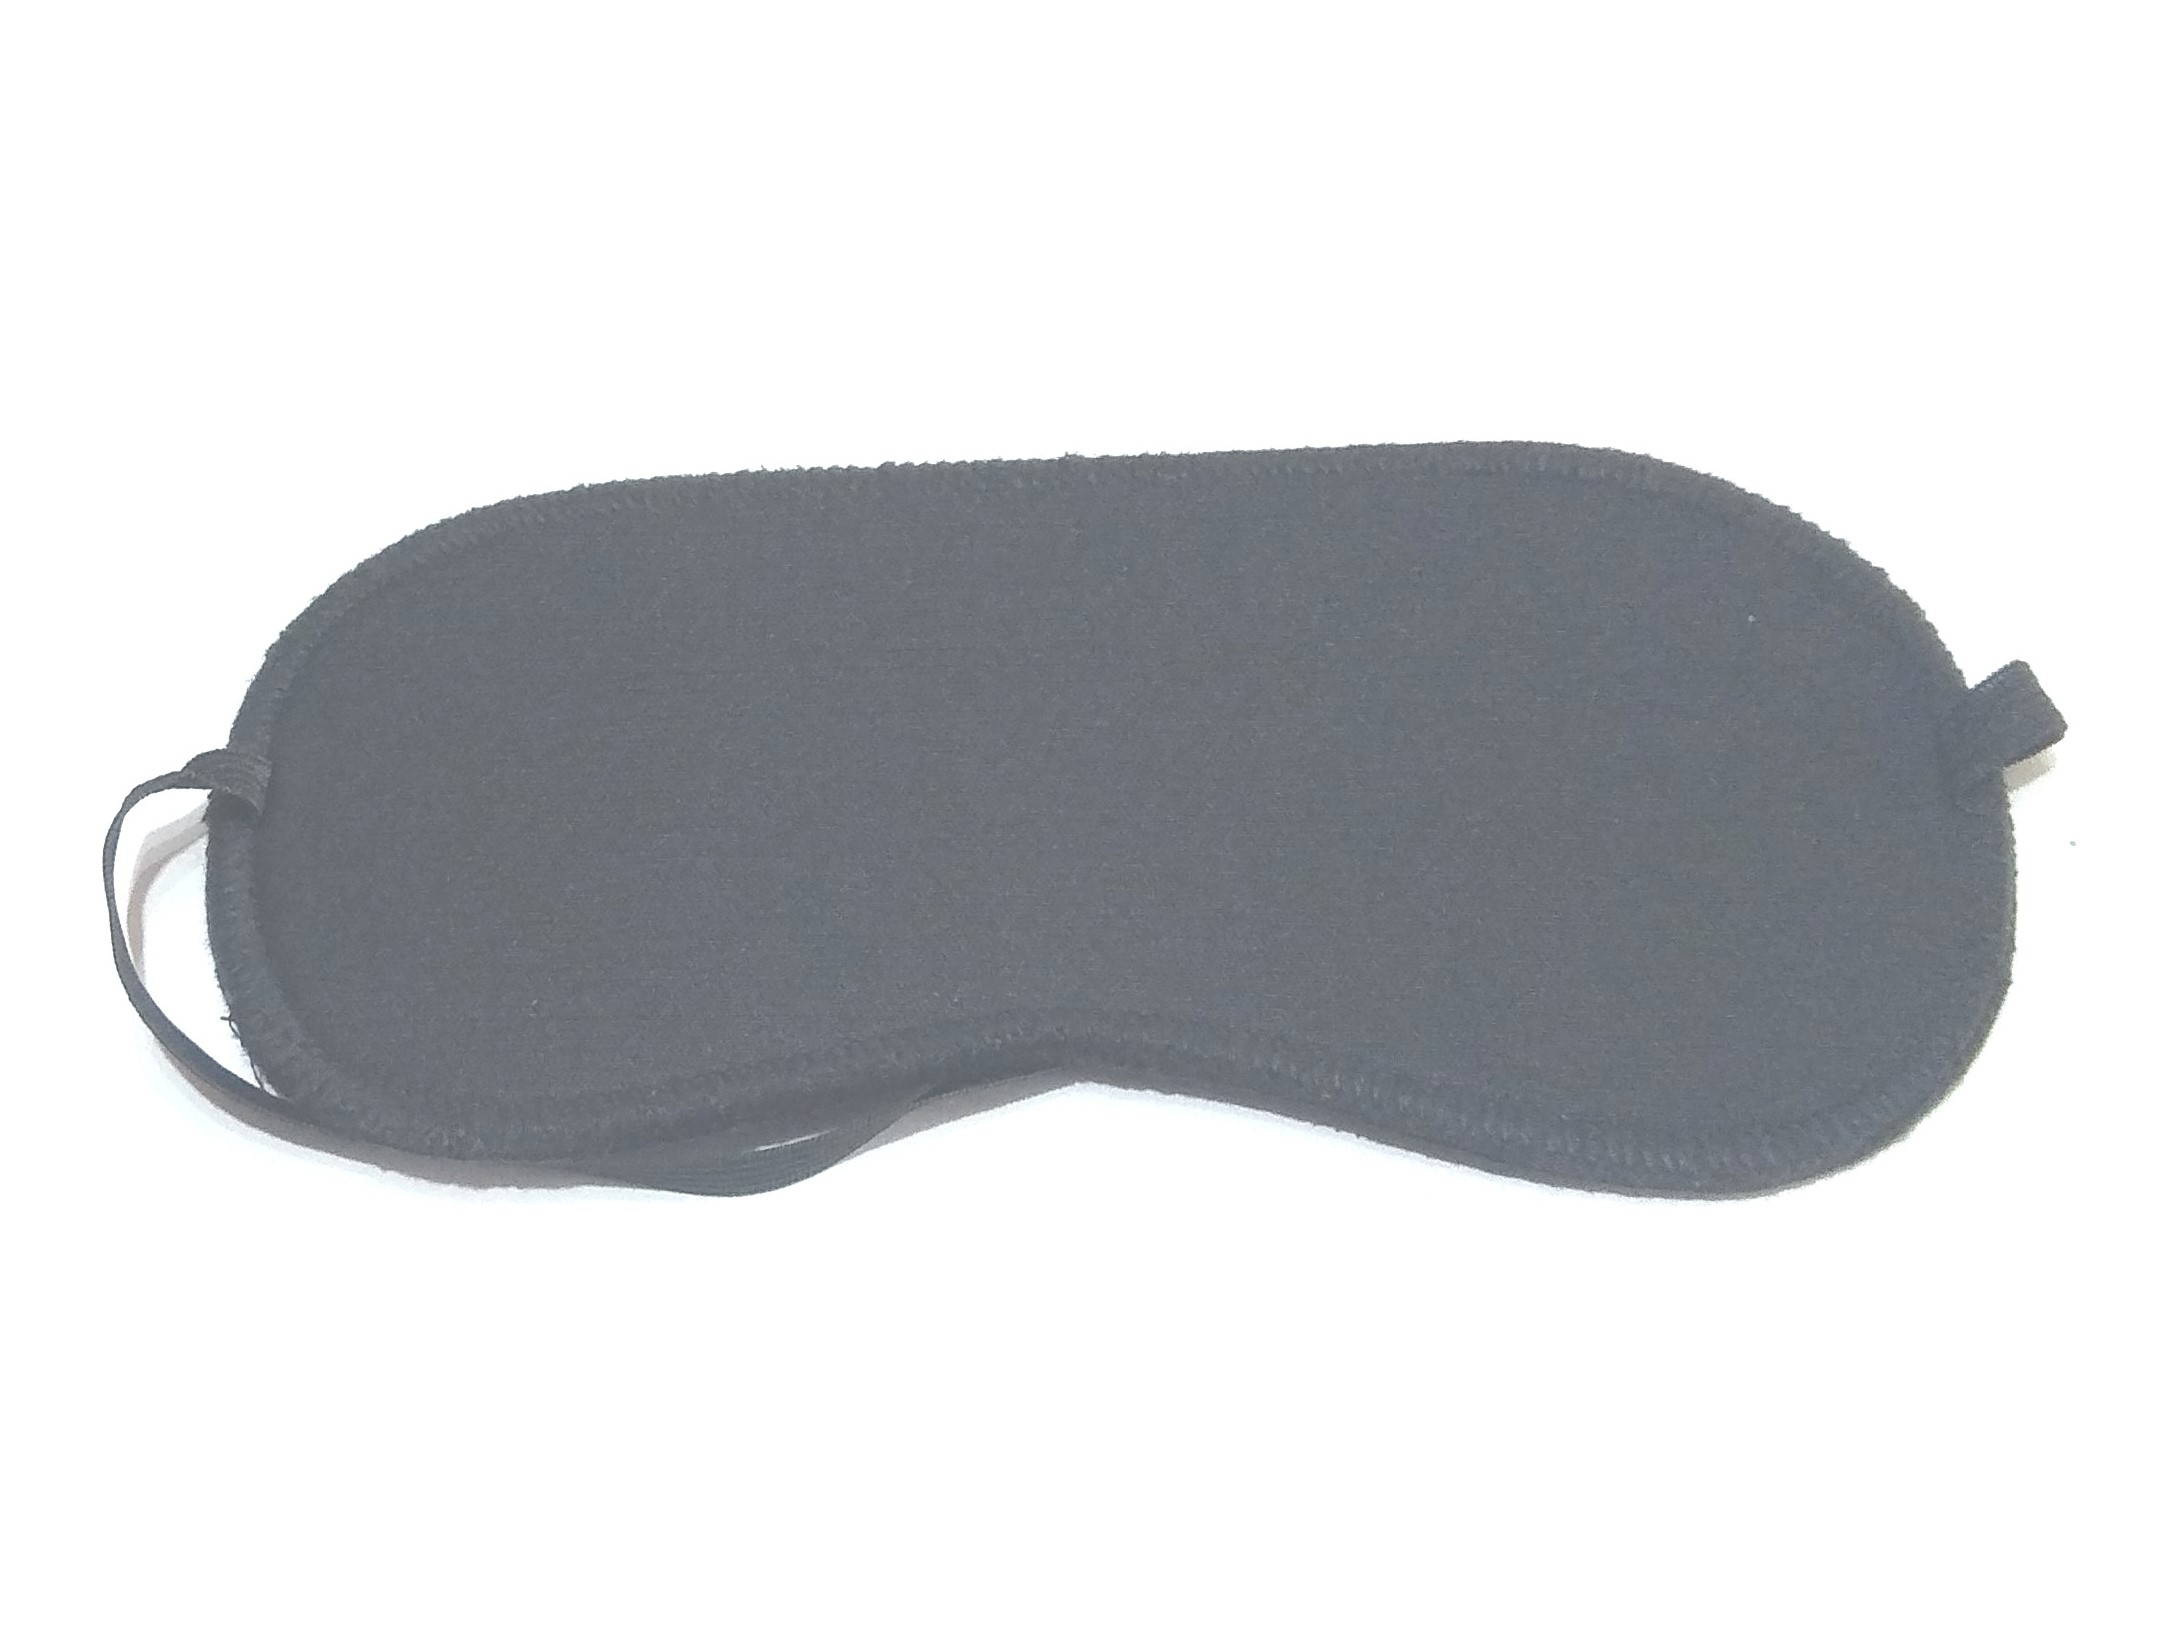 Blindfold Eye Mask Travel Relax Sleeping Aid Shade Cover 1 Pic. Size  18/7.5 cm